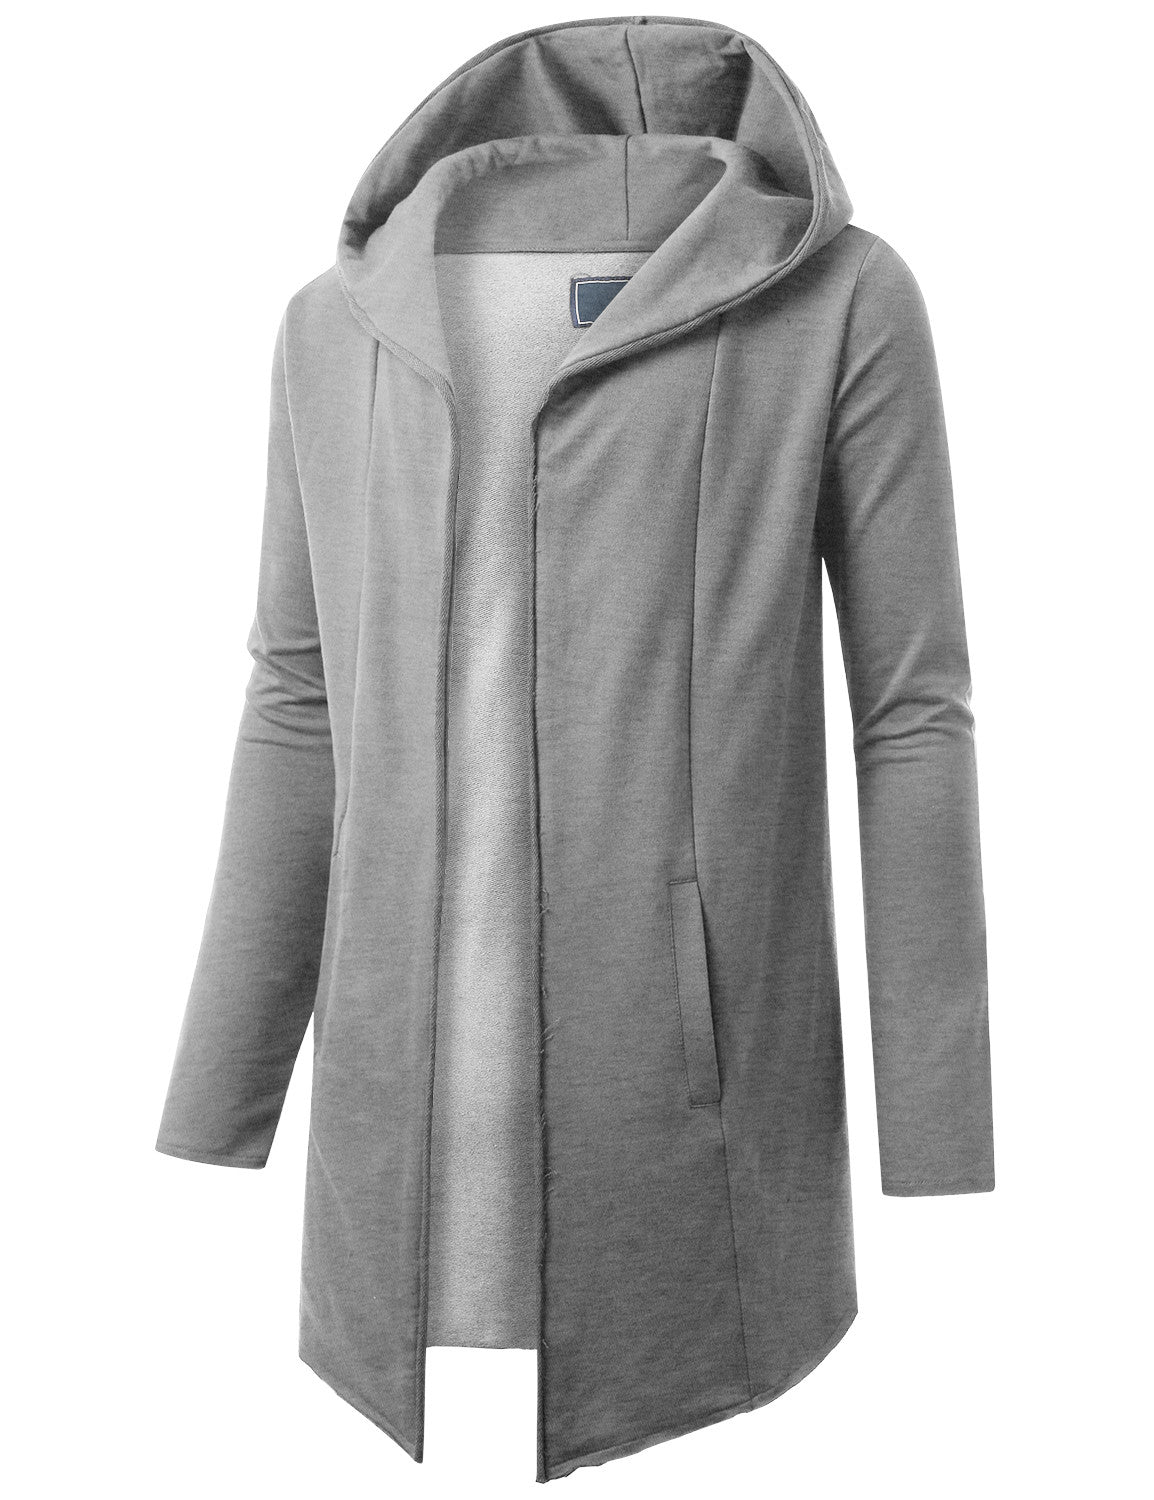 HGRAY French Terry Hooded Cardigan Cape-URBANCREWS